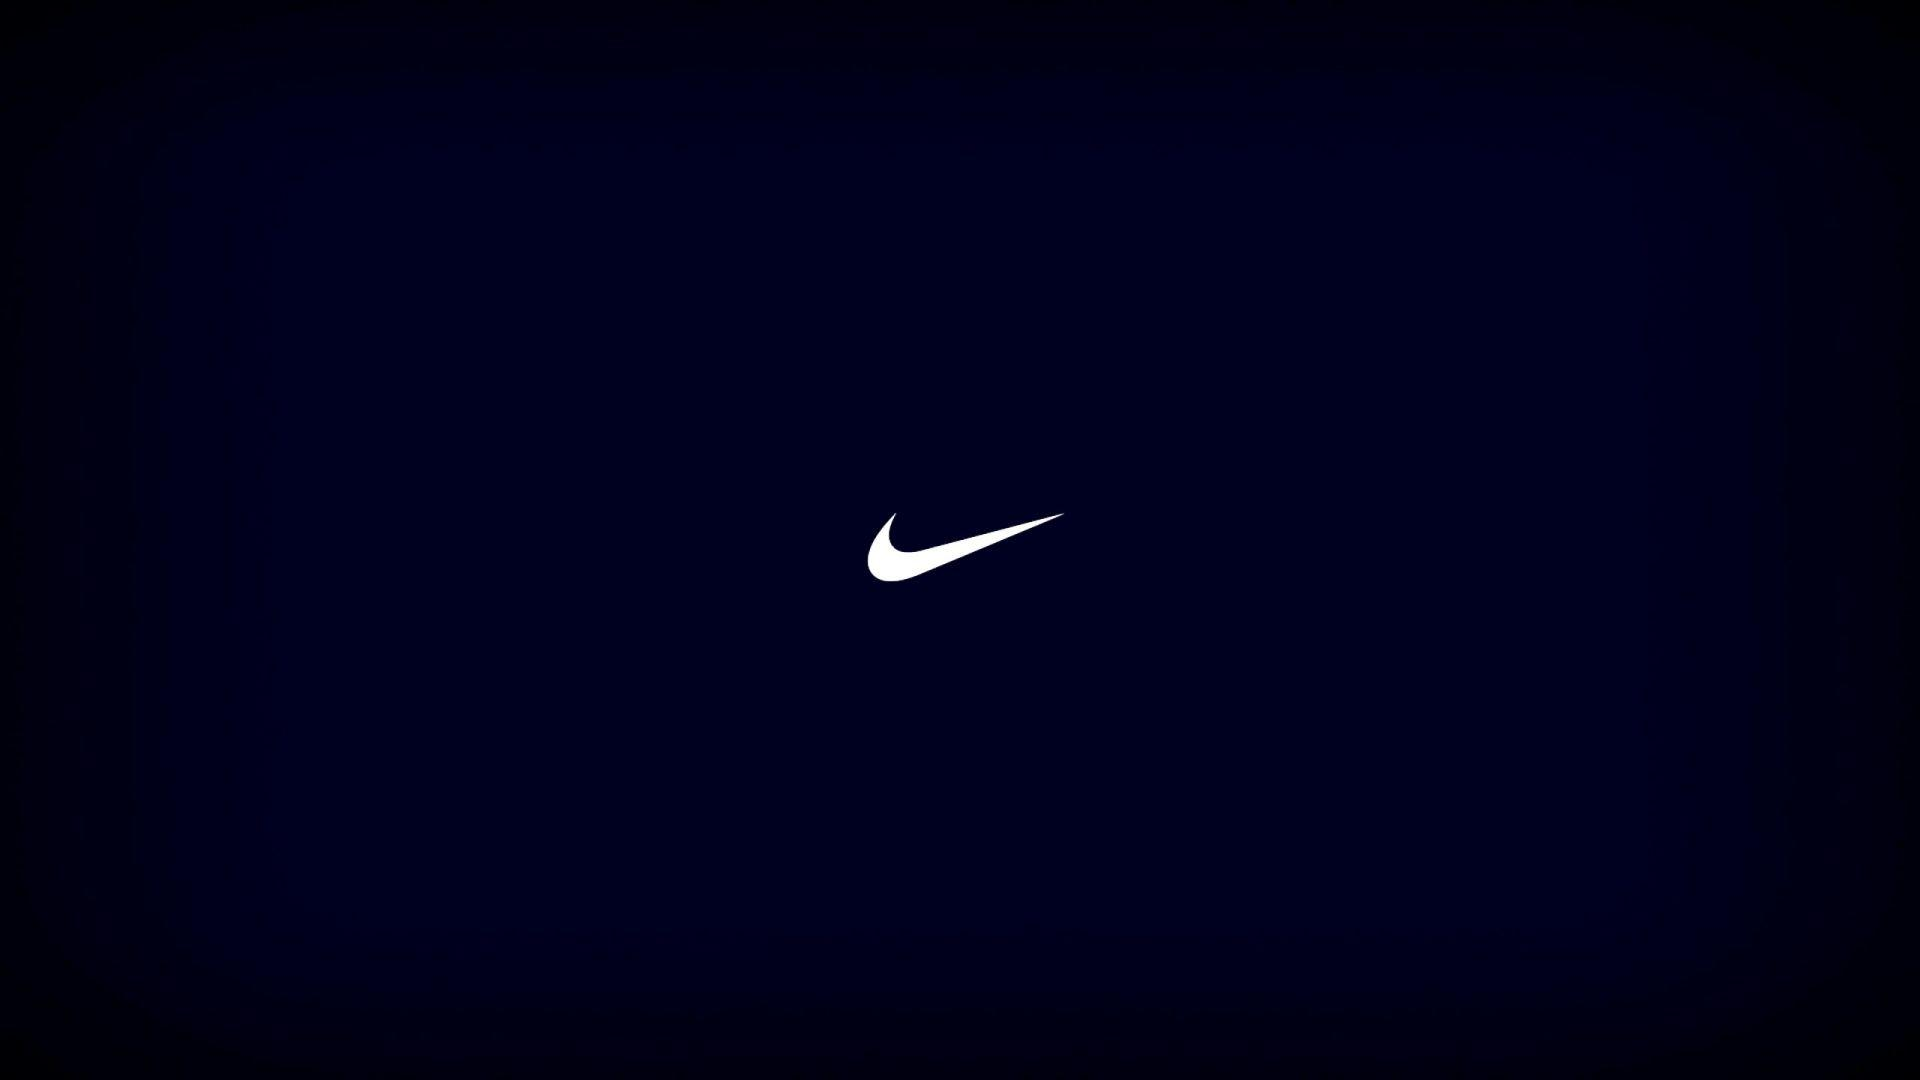 Nike Logo Wallpapers.